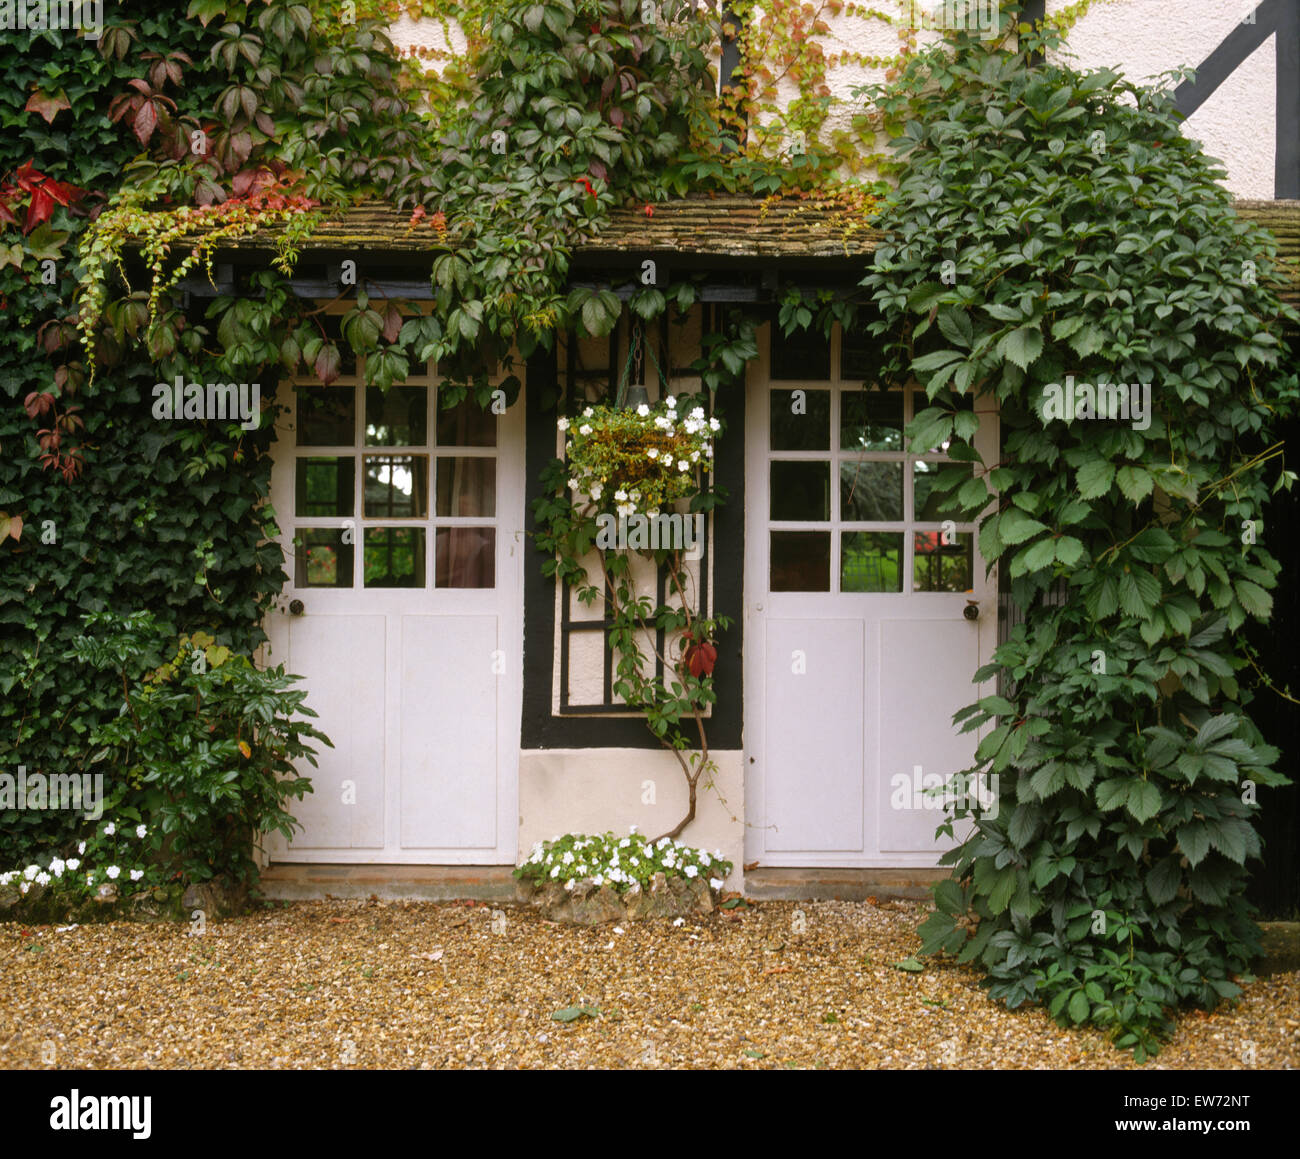 French cottage exterior - Exterior Of White French Cottage With Green Virginia Creeper And Half Glazed White Doors